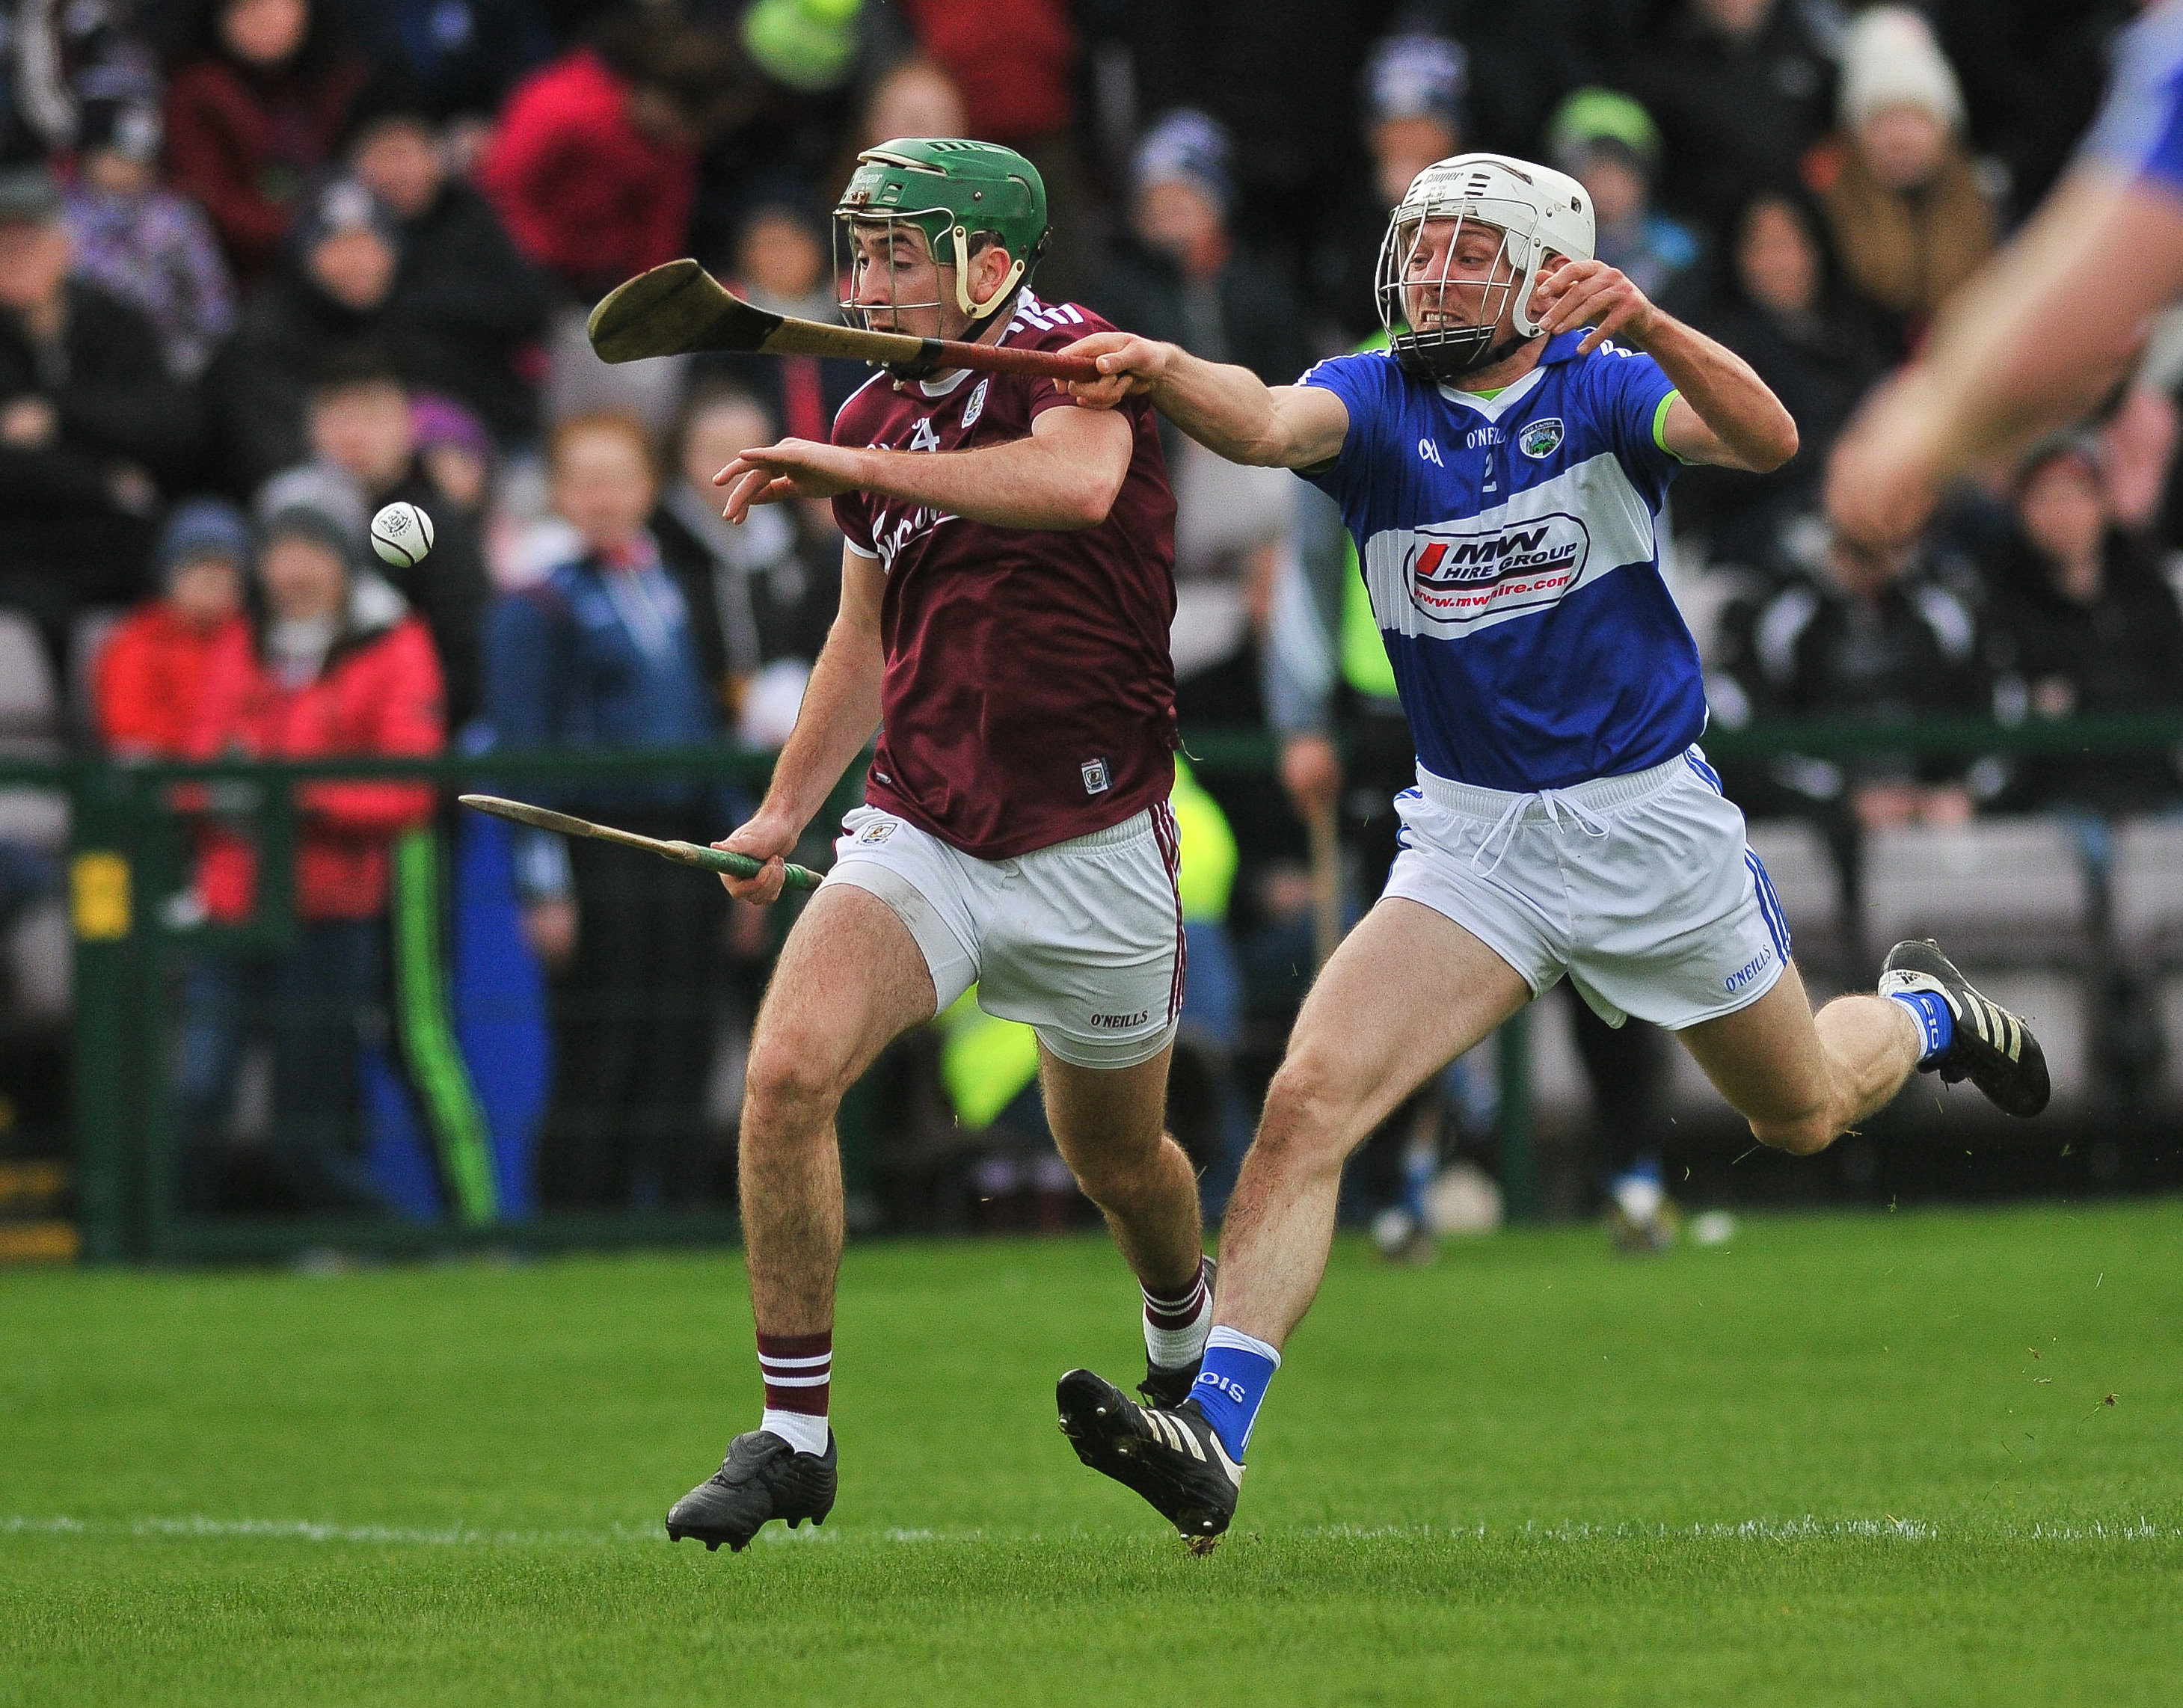 WATCH: Laois business owners on how the lack of GAA has